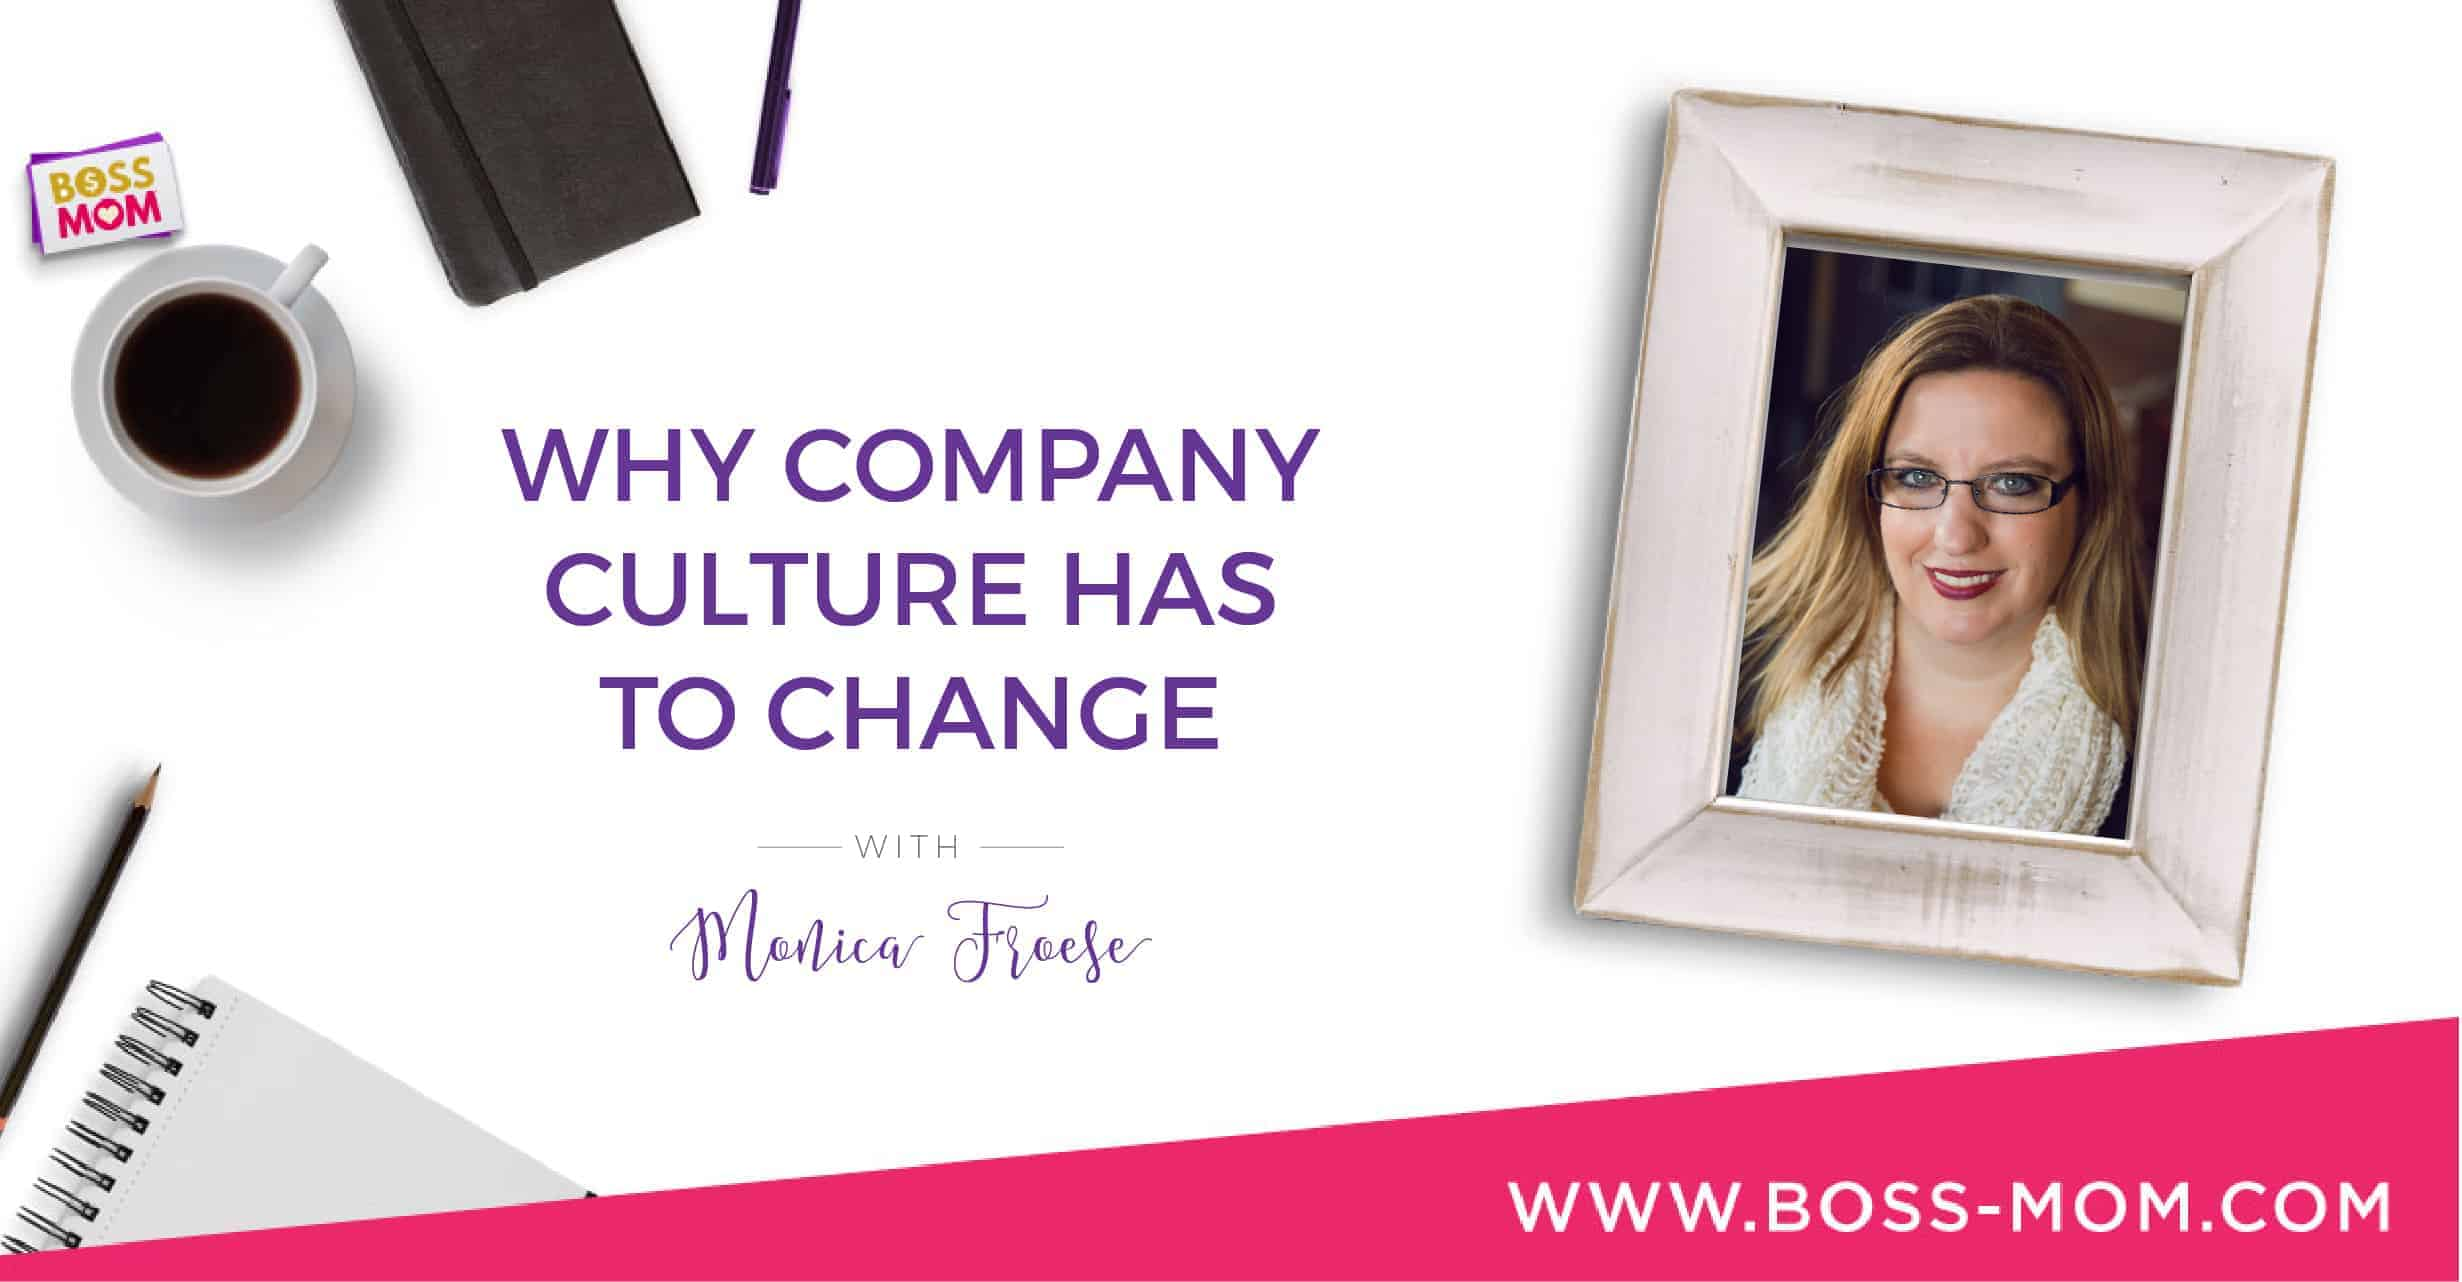 Episode 207: Why Company Culture Has to Change with Monica Froese